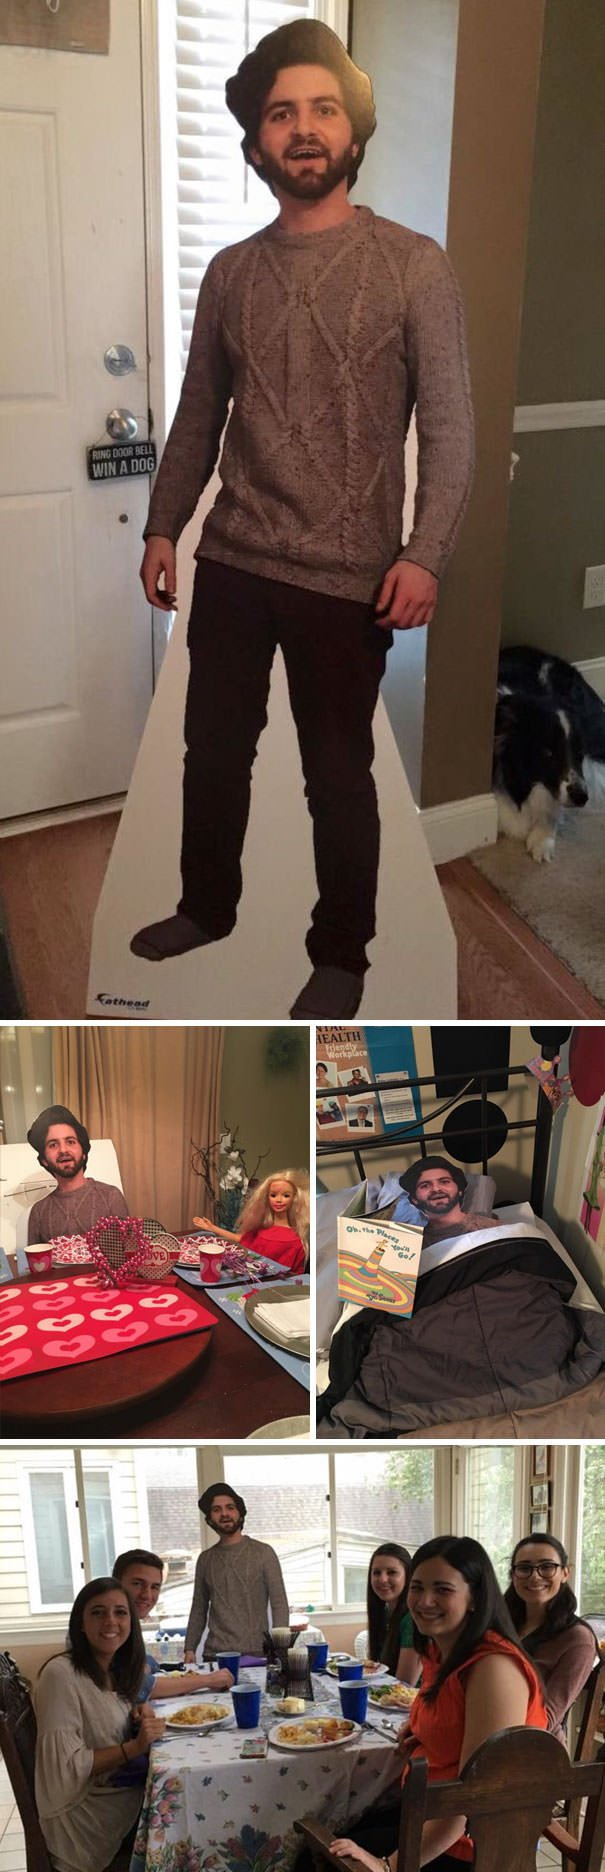 Son Studying Abroad Sent Mom Cutout Of Himself And Thought They